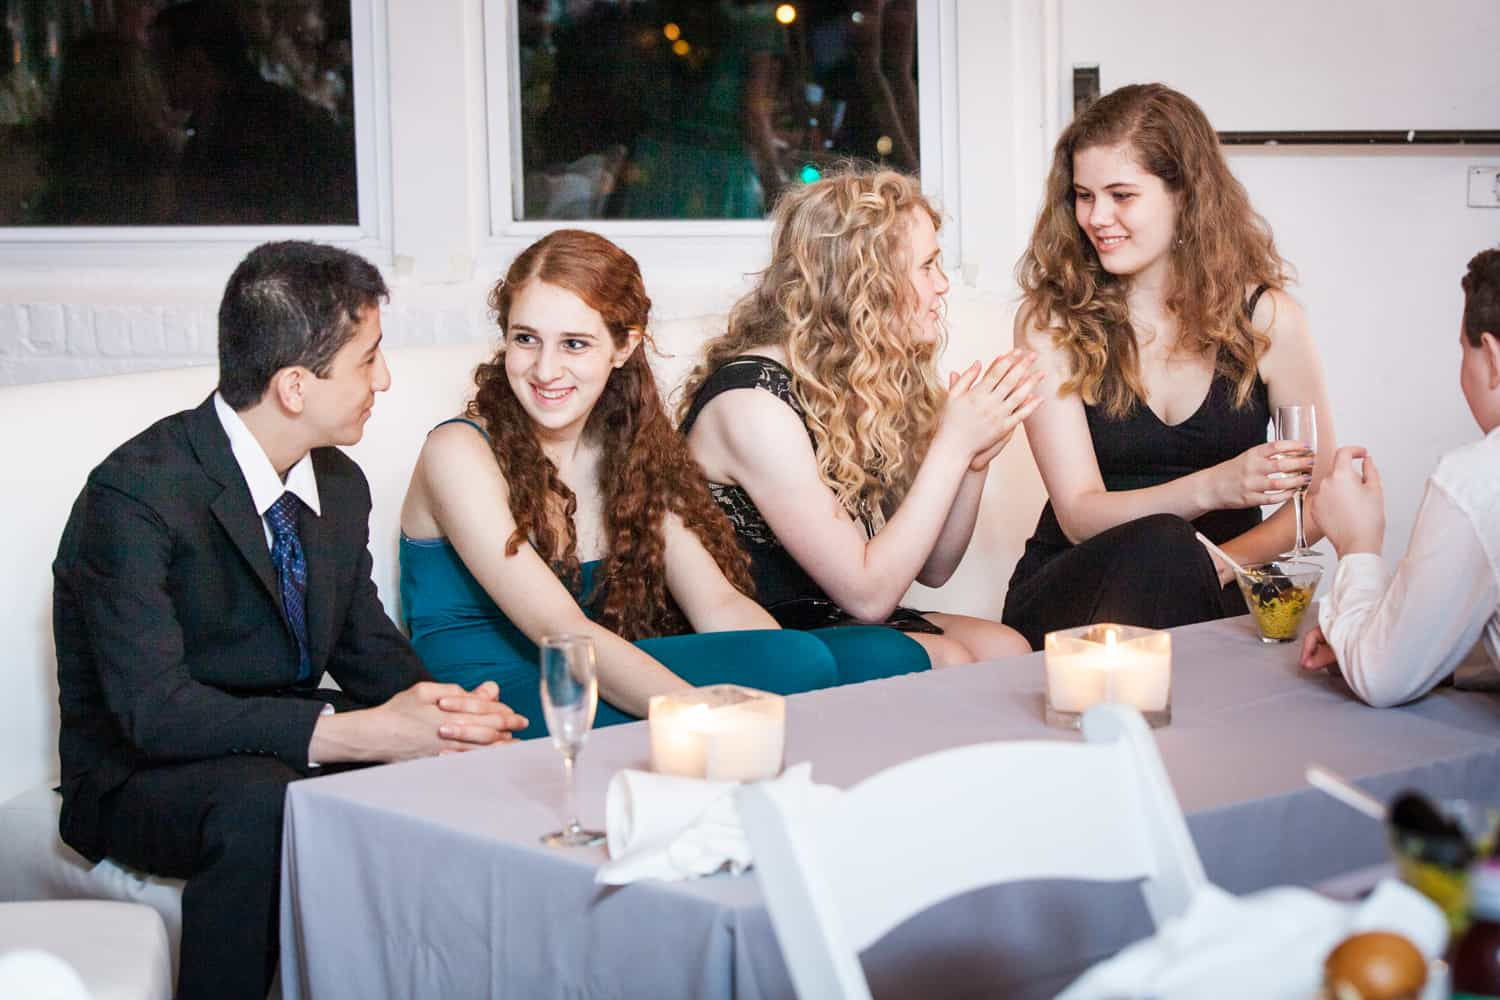 Kids talking at a table for an article on how to plan the perfect bar mitzvah